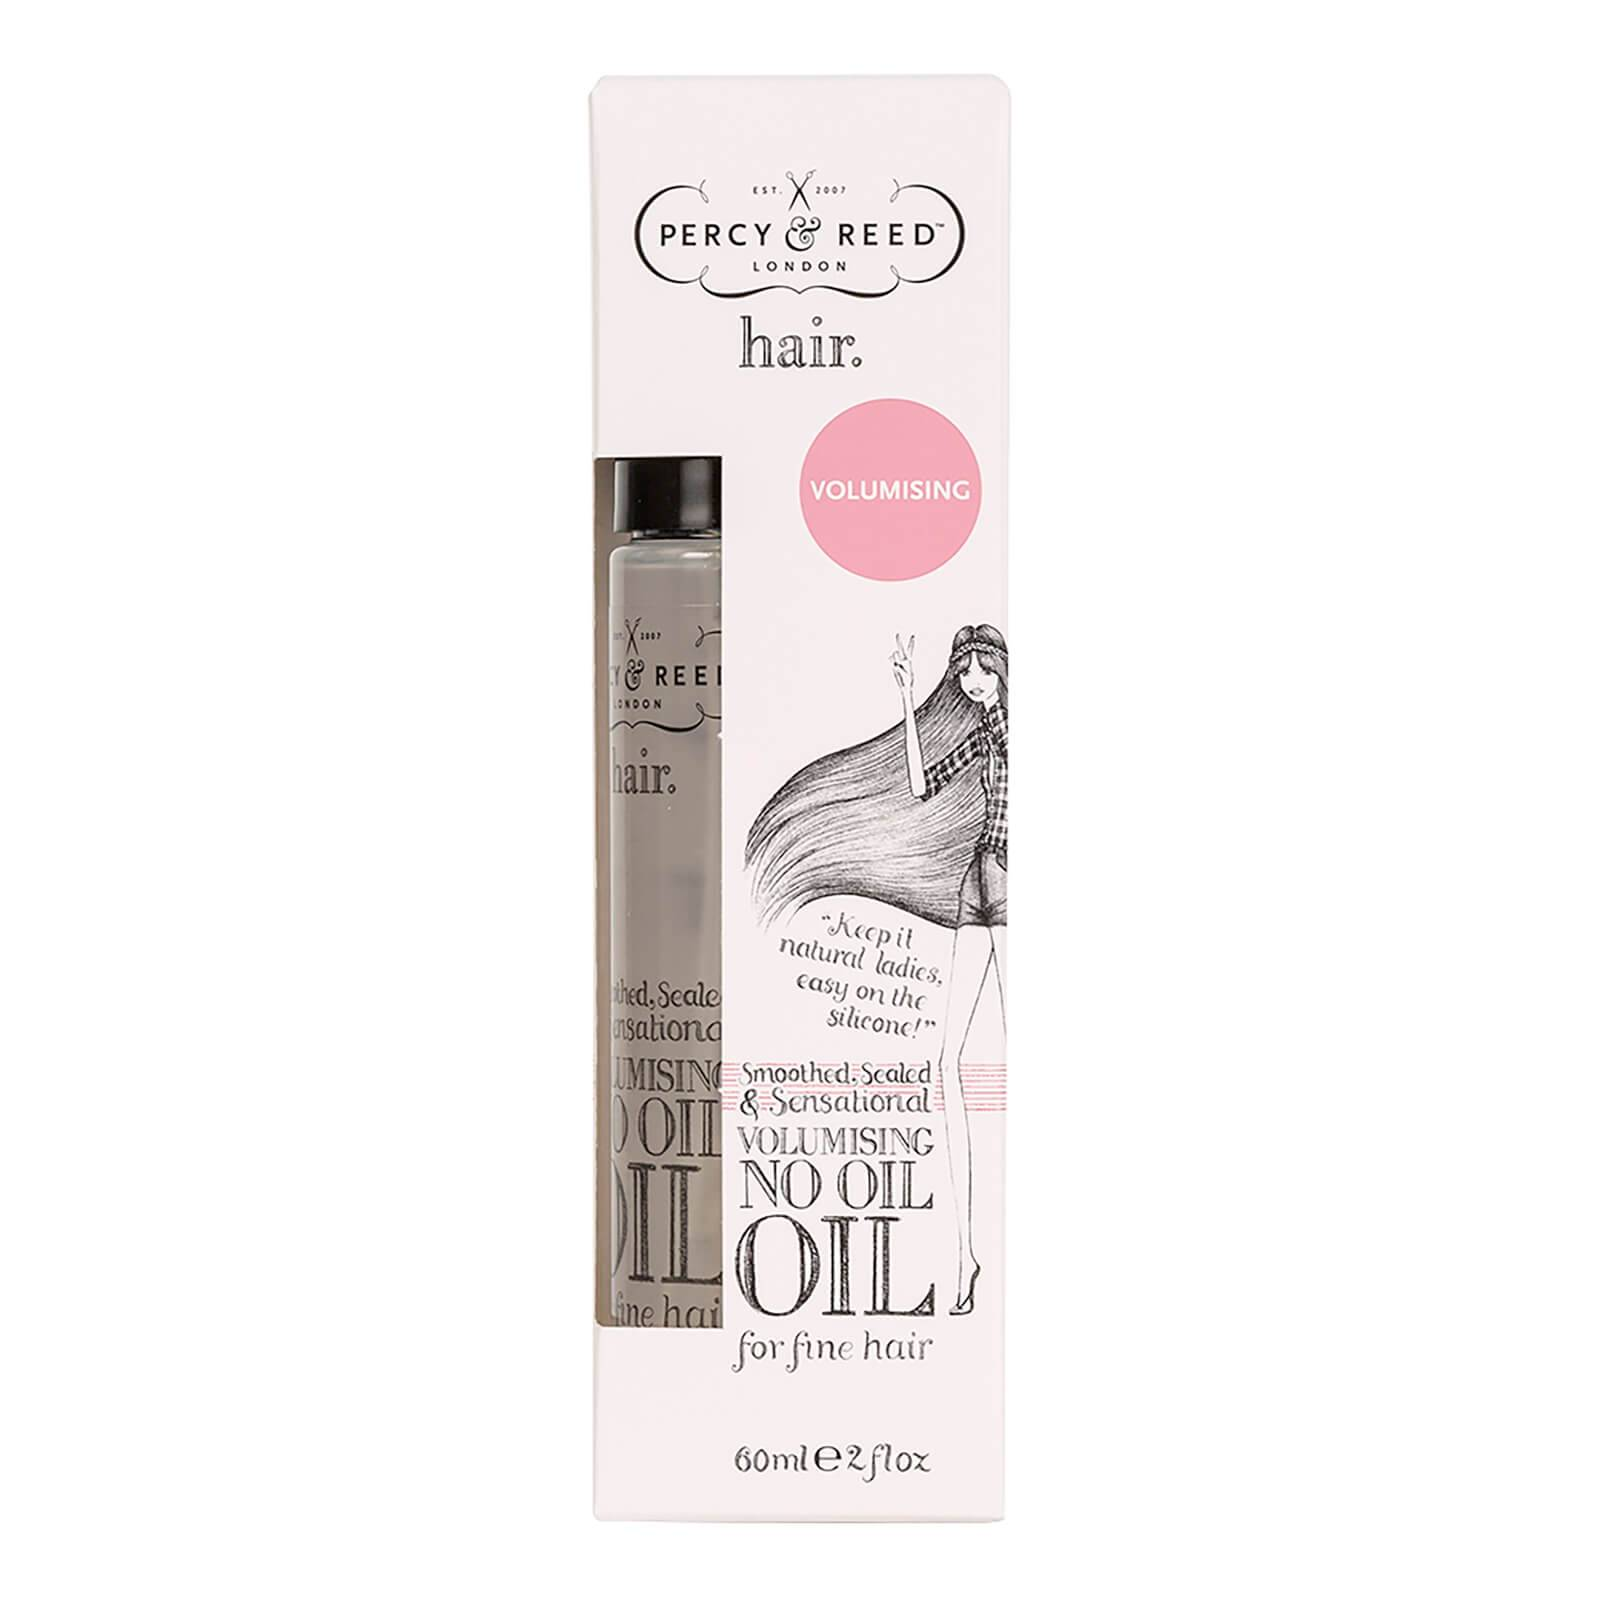 Percy & Reed Percy & Reed Smooth Sealed and Sensational Volumising No Oil for Fine Hair (60 ml)